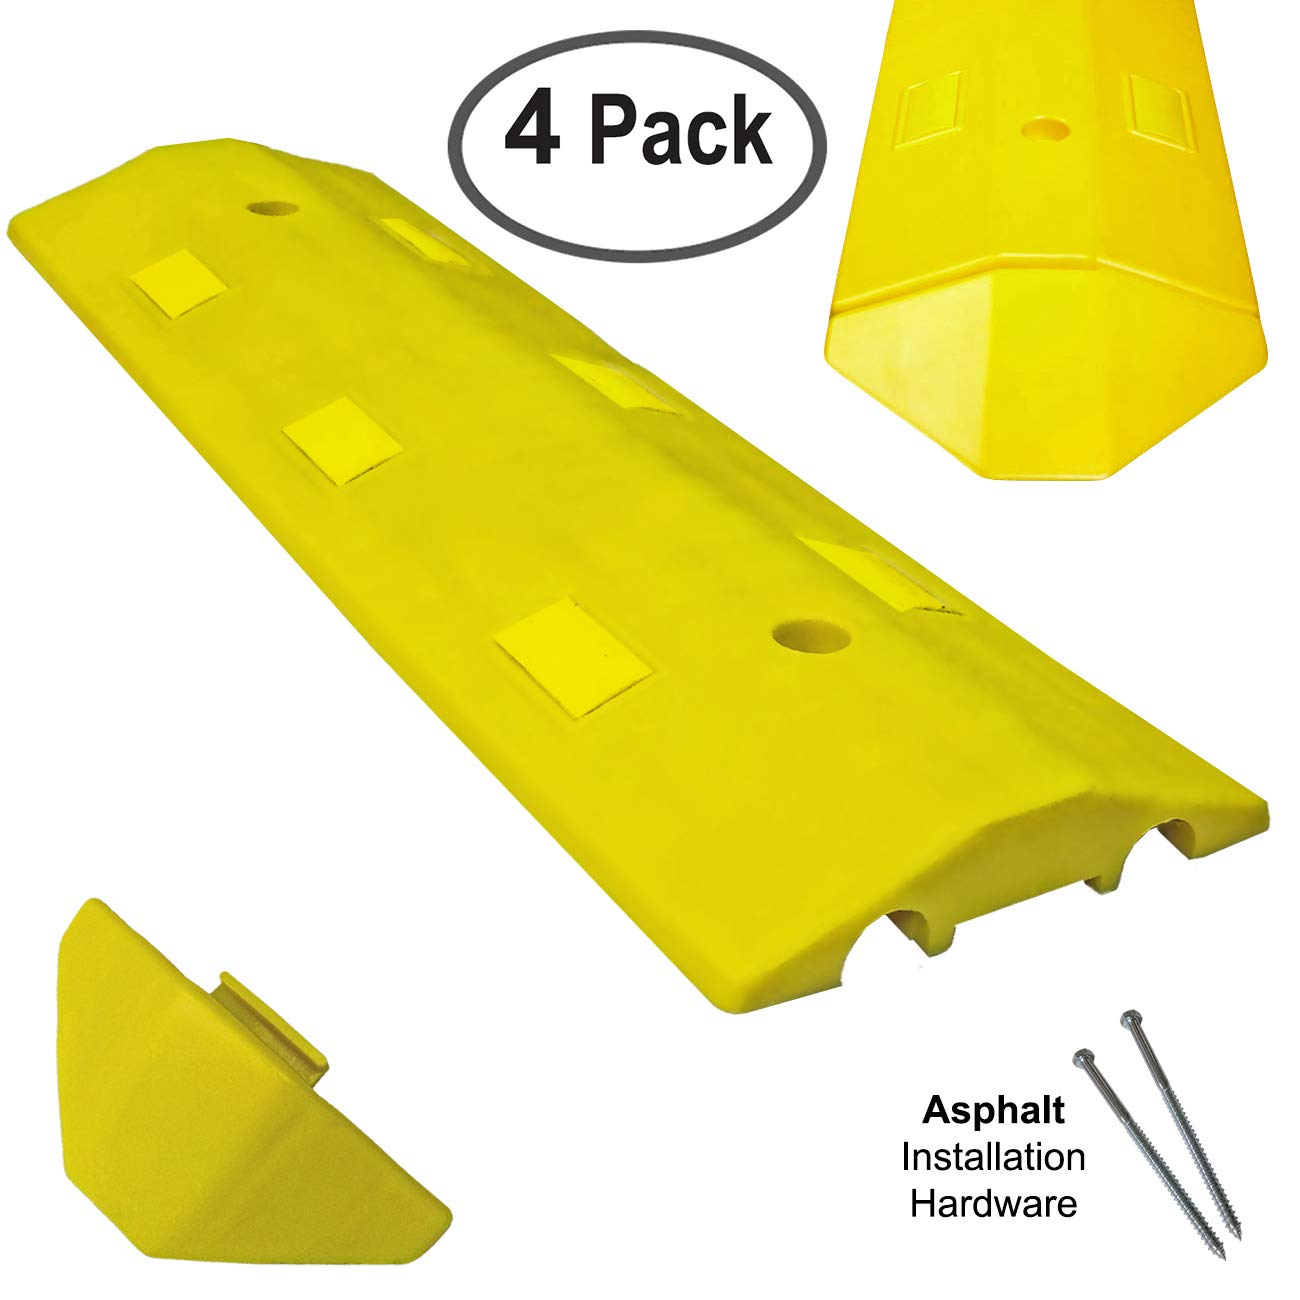 Electriduct Ultra Light Weight Economy Speed Bump - Yellow - 4 Pieces (12 Feet) - Asphalt by Electriduct (Image #1)